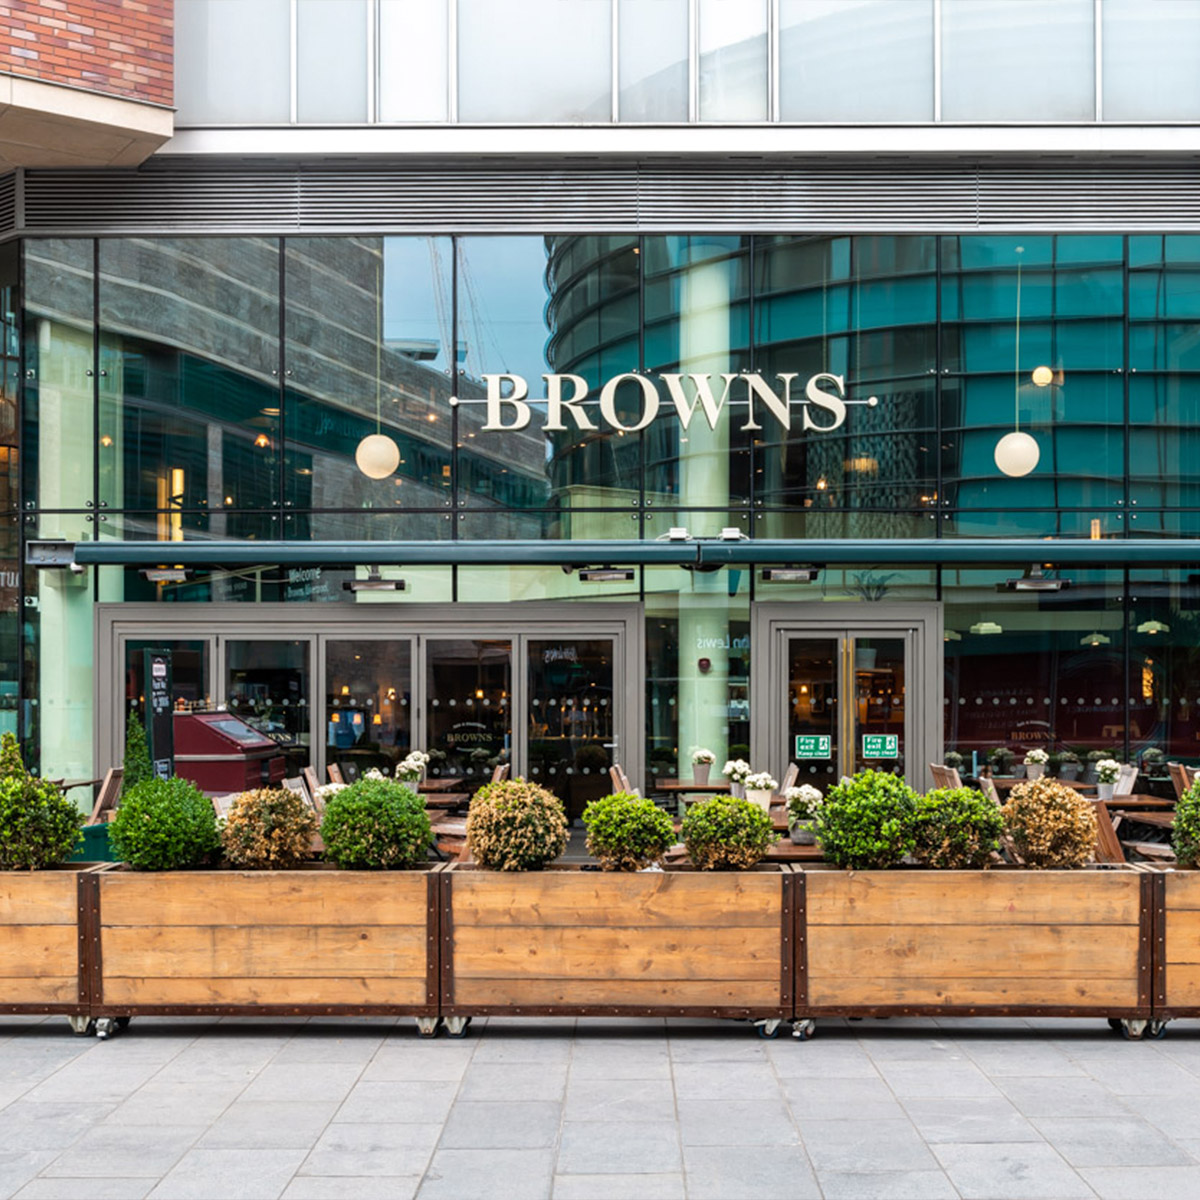 Browns Brasserie & Bar Liverpool